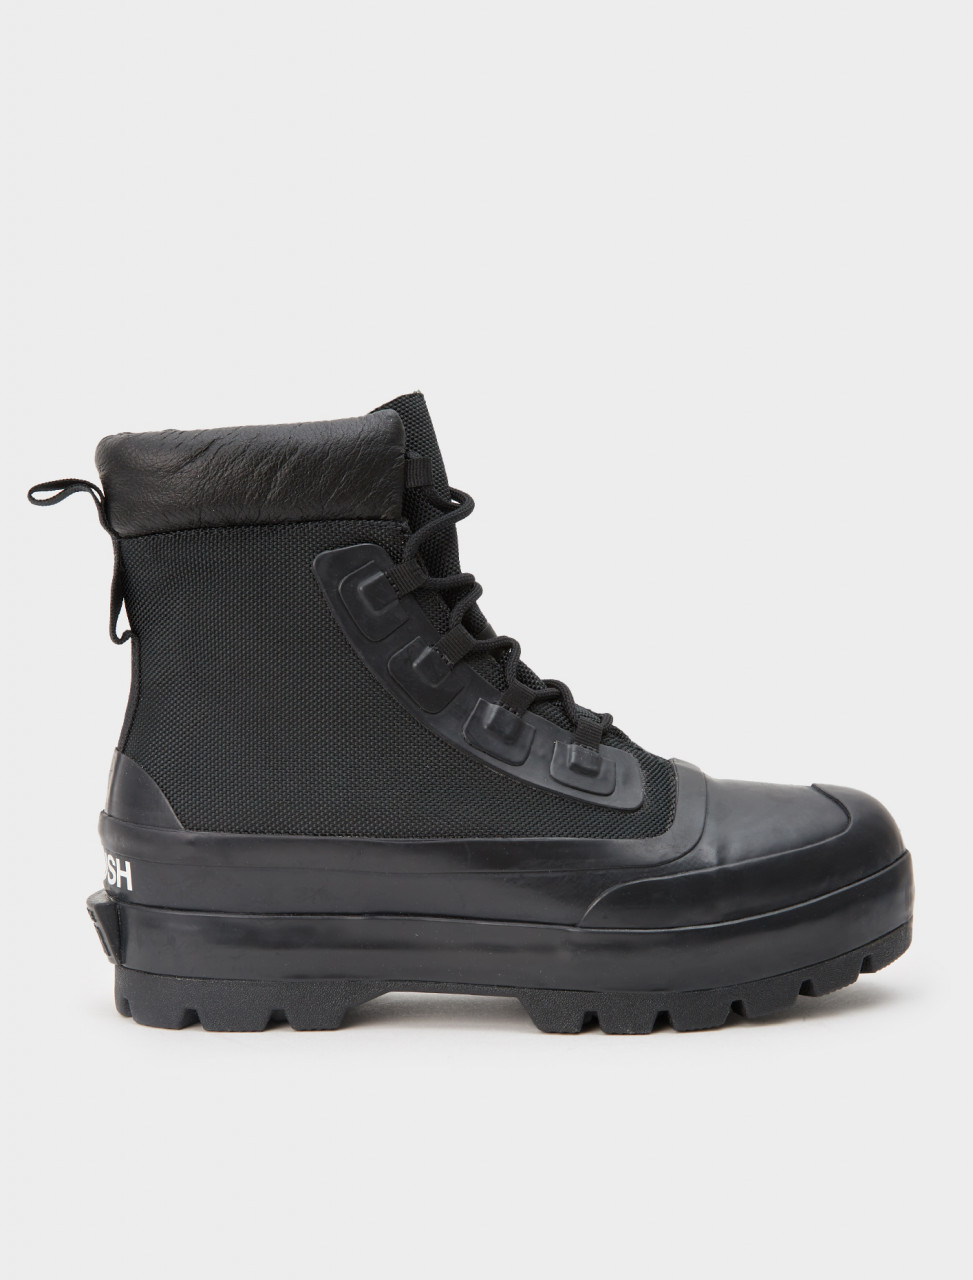 170588C-001 CONVERSE CTAS DUCK BOOT HI BLACK